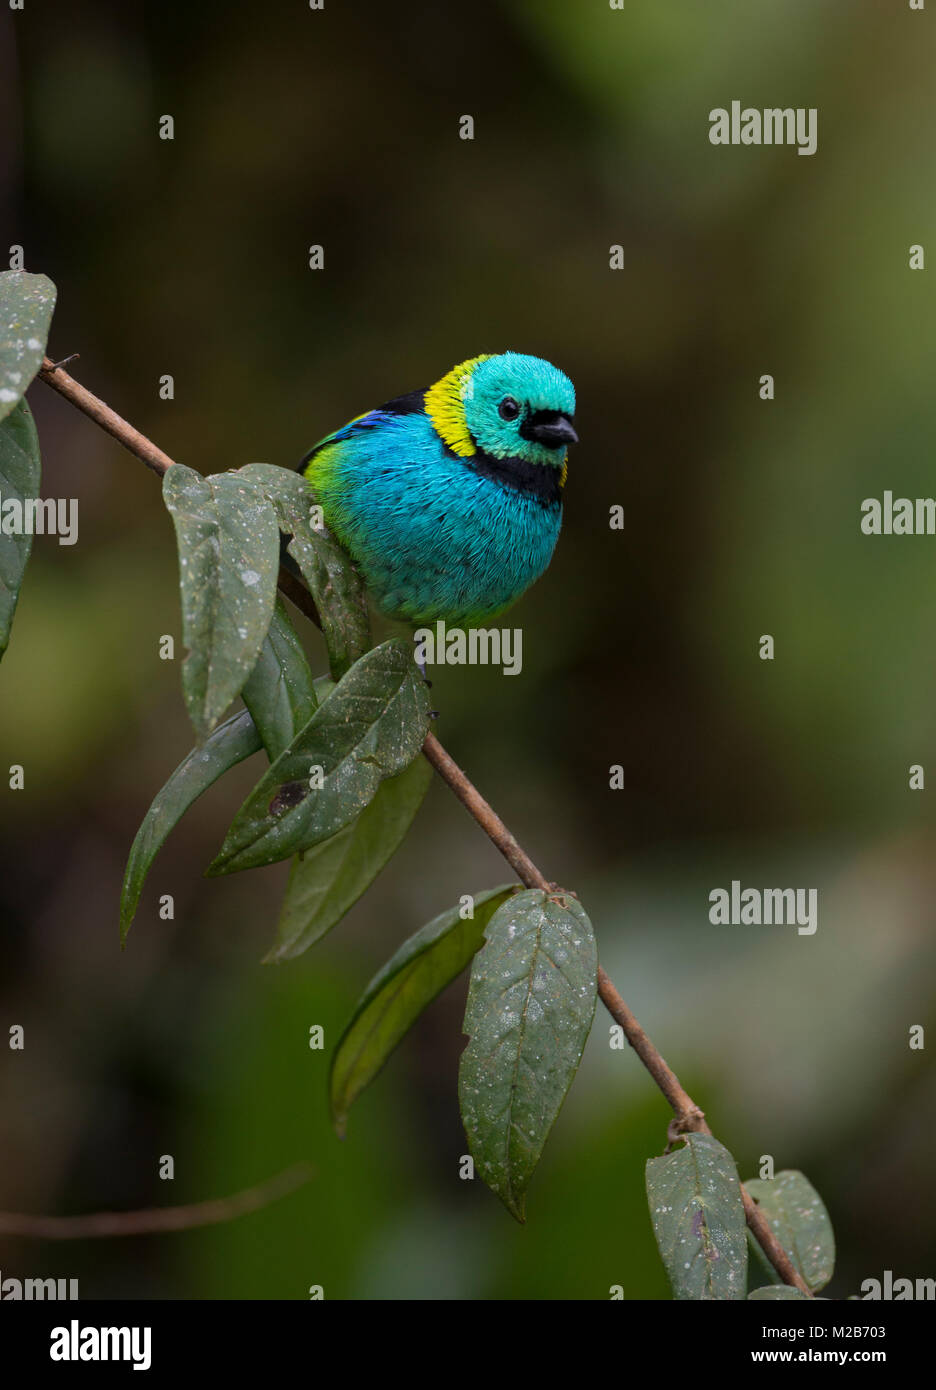 Green-headed Tanager (Tangara seledon) from the Atlantic Rainforest - Stock Image